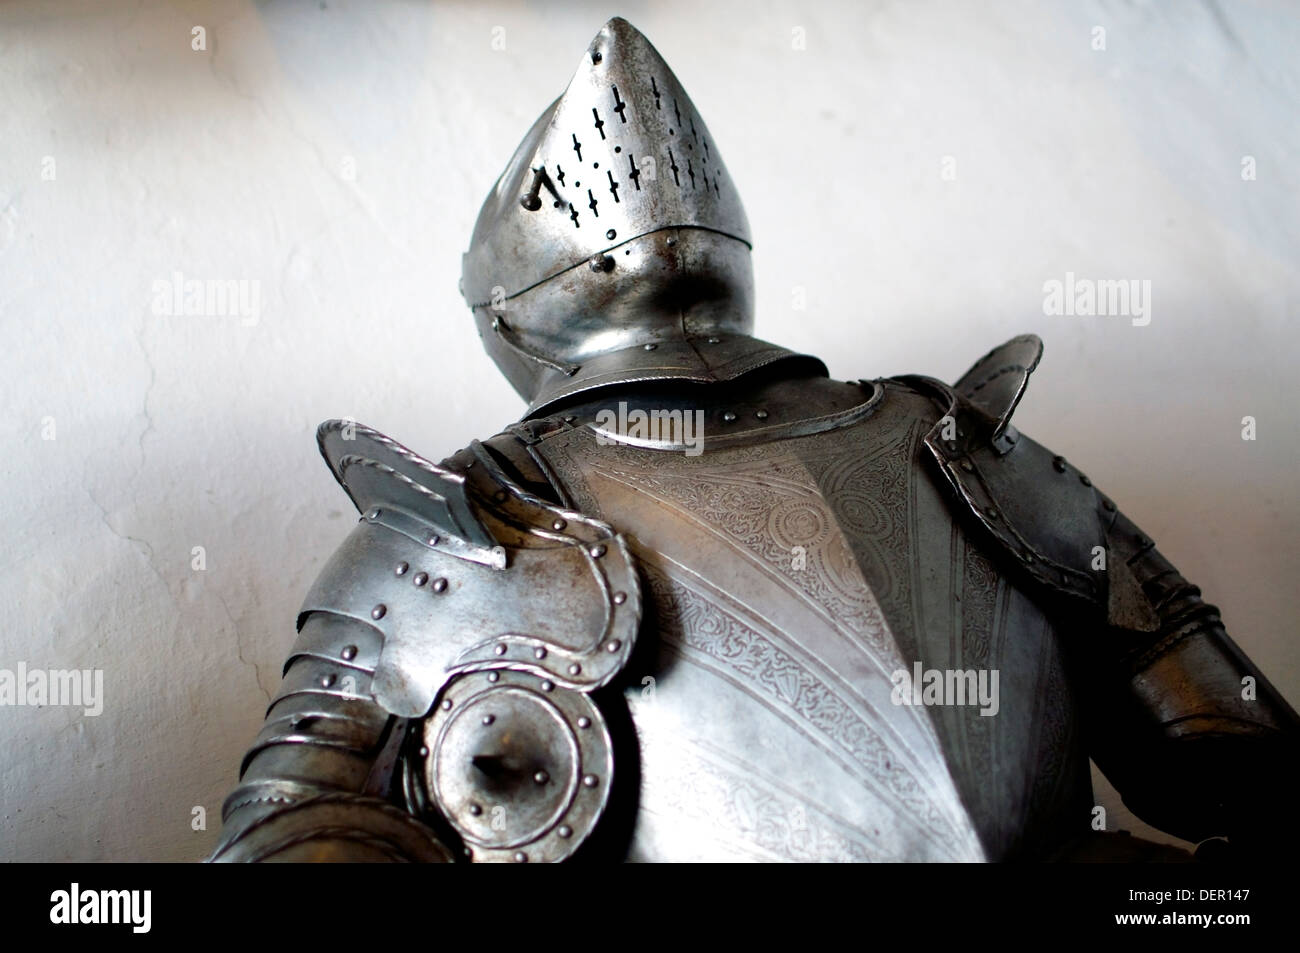 Armor of a medieval knight, seen from below - Stock Image